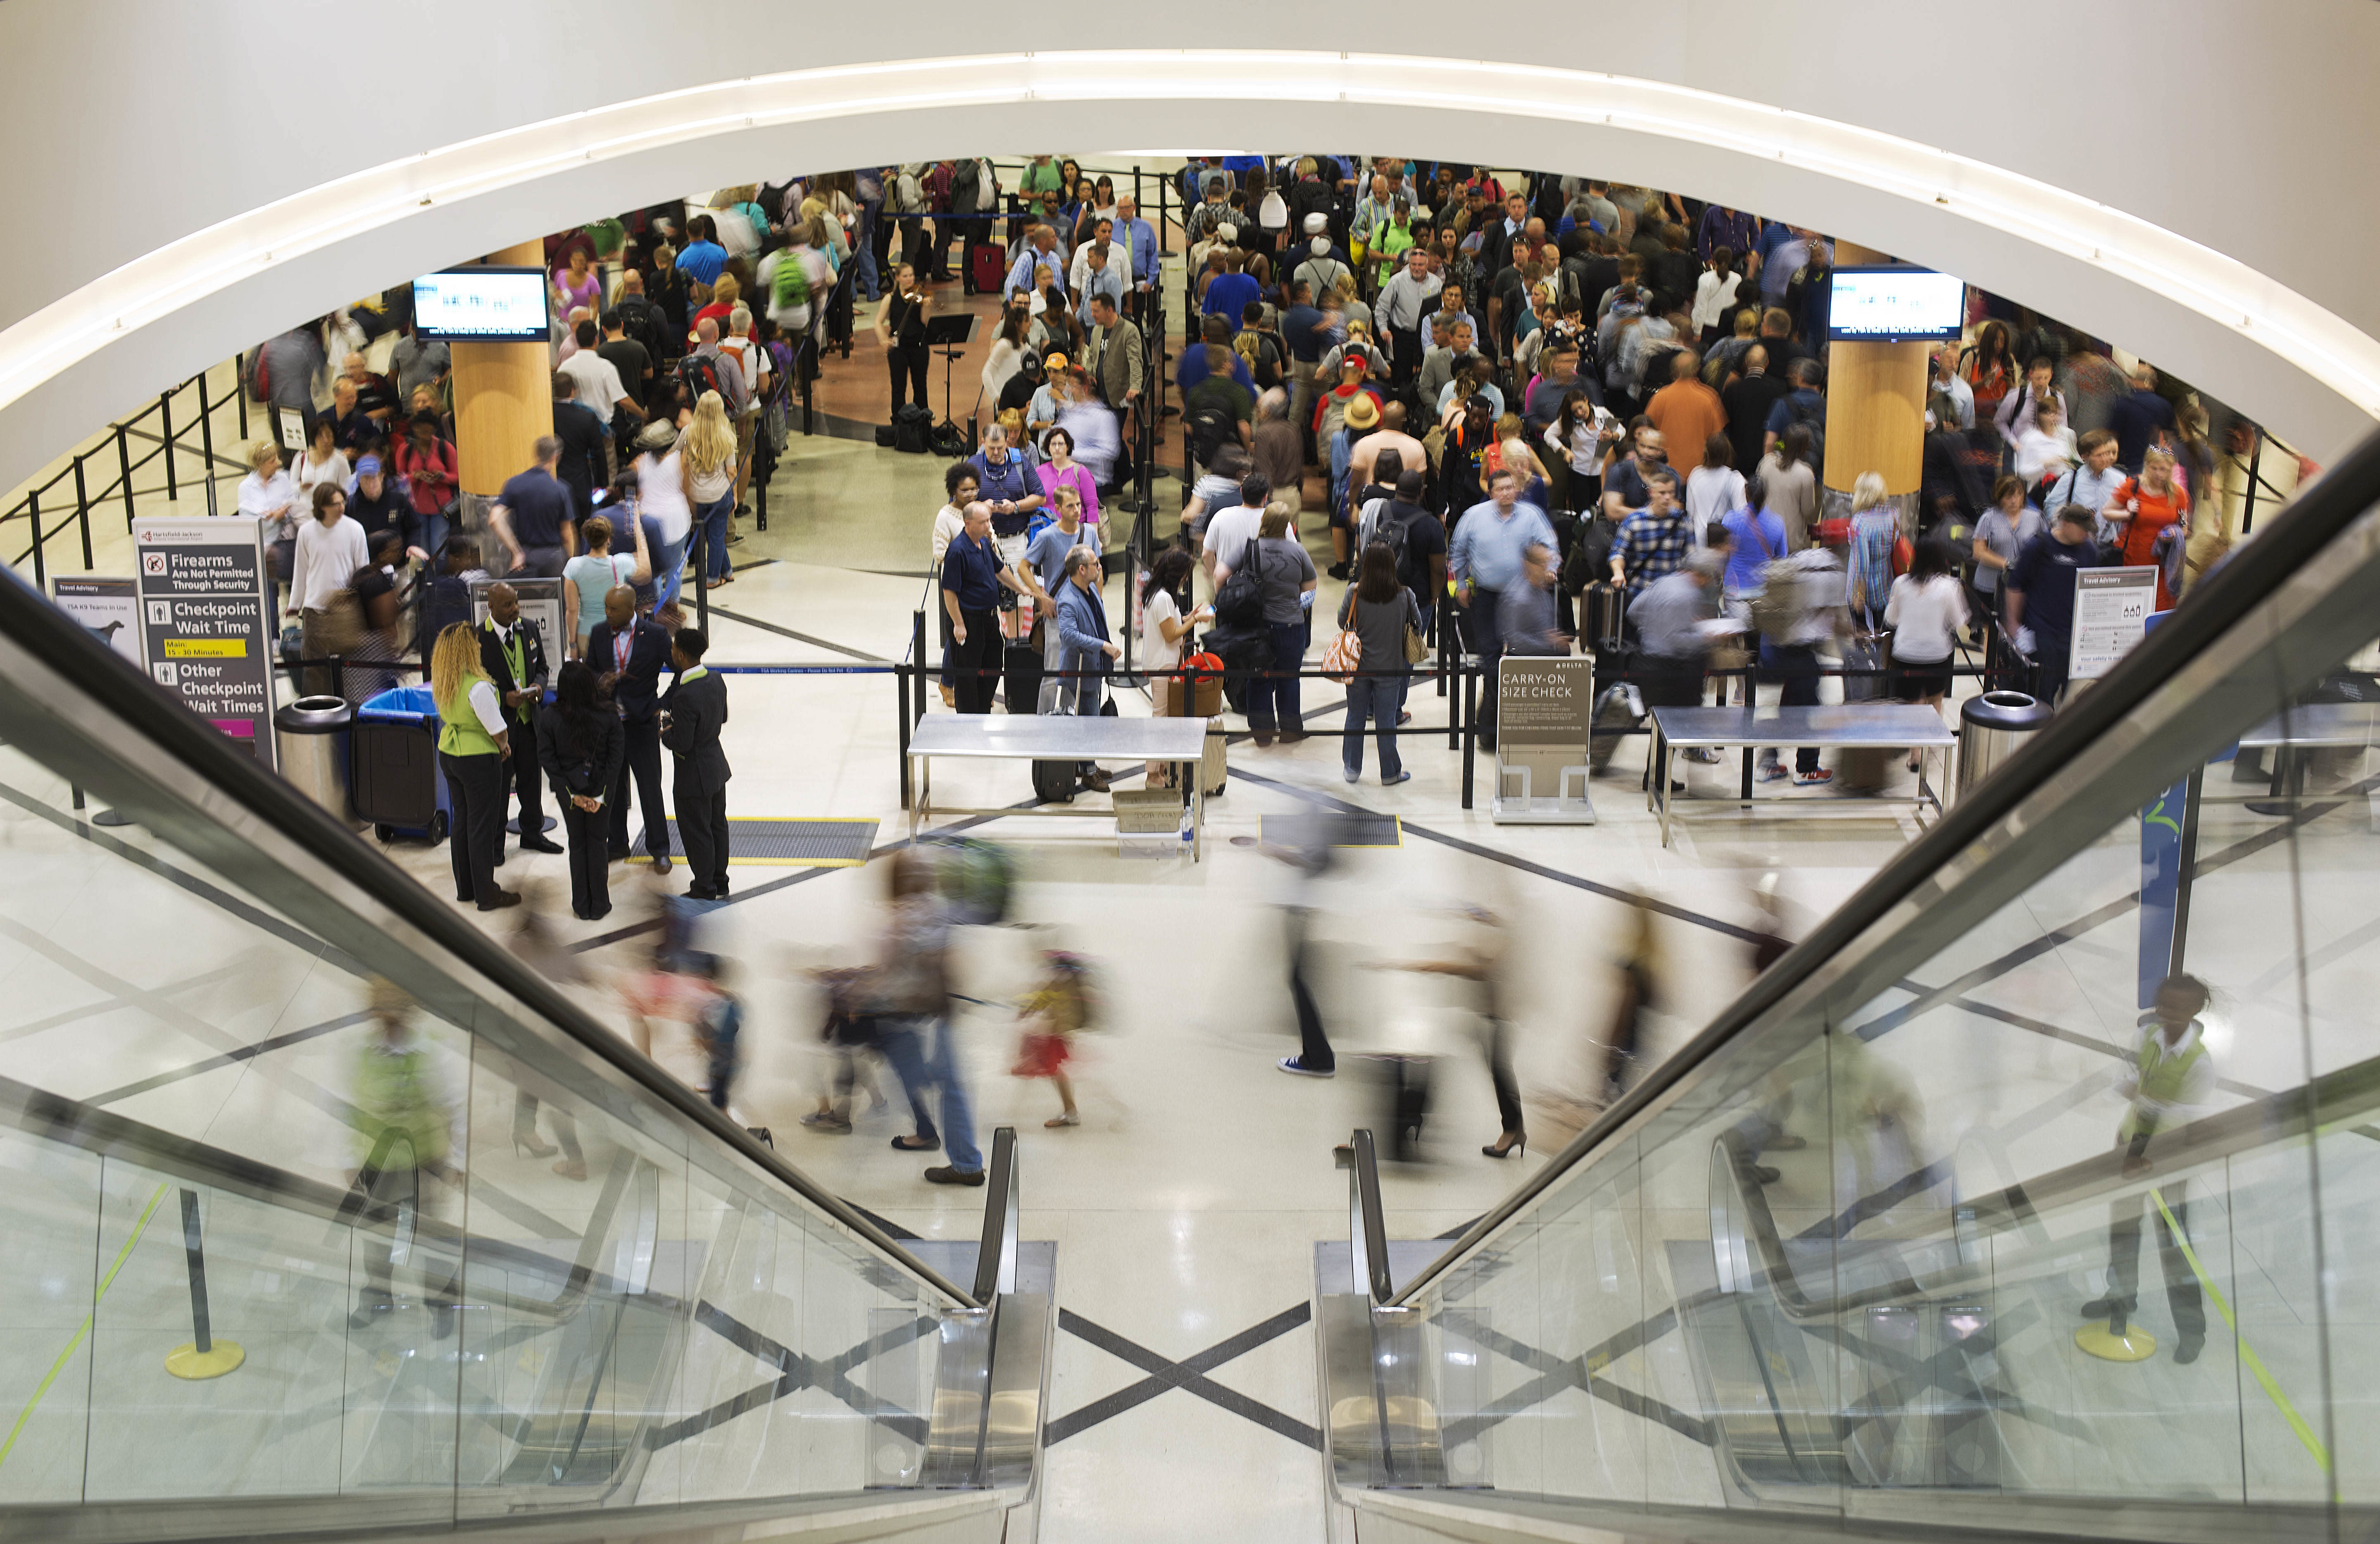 What to know about long lines at airport security